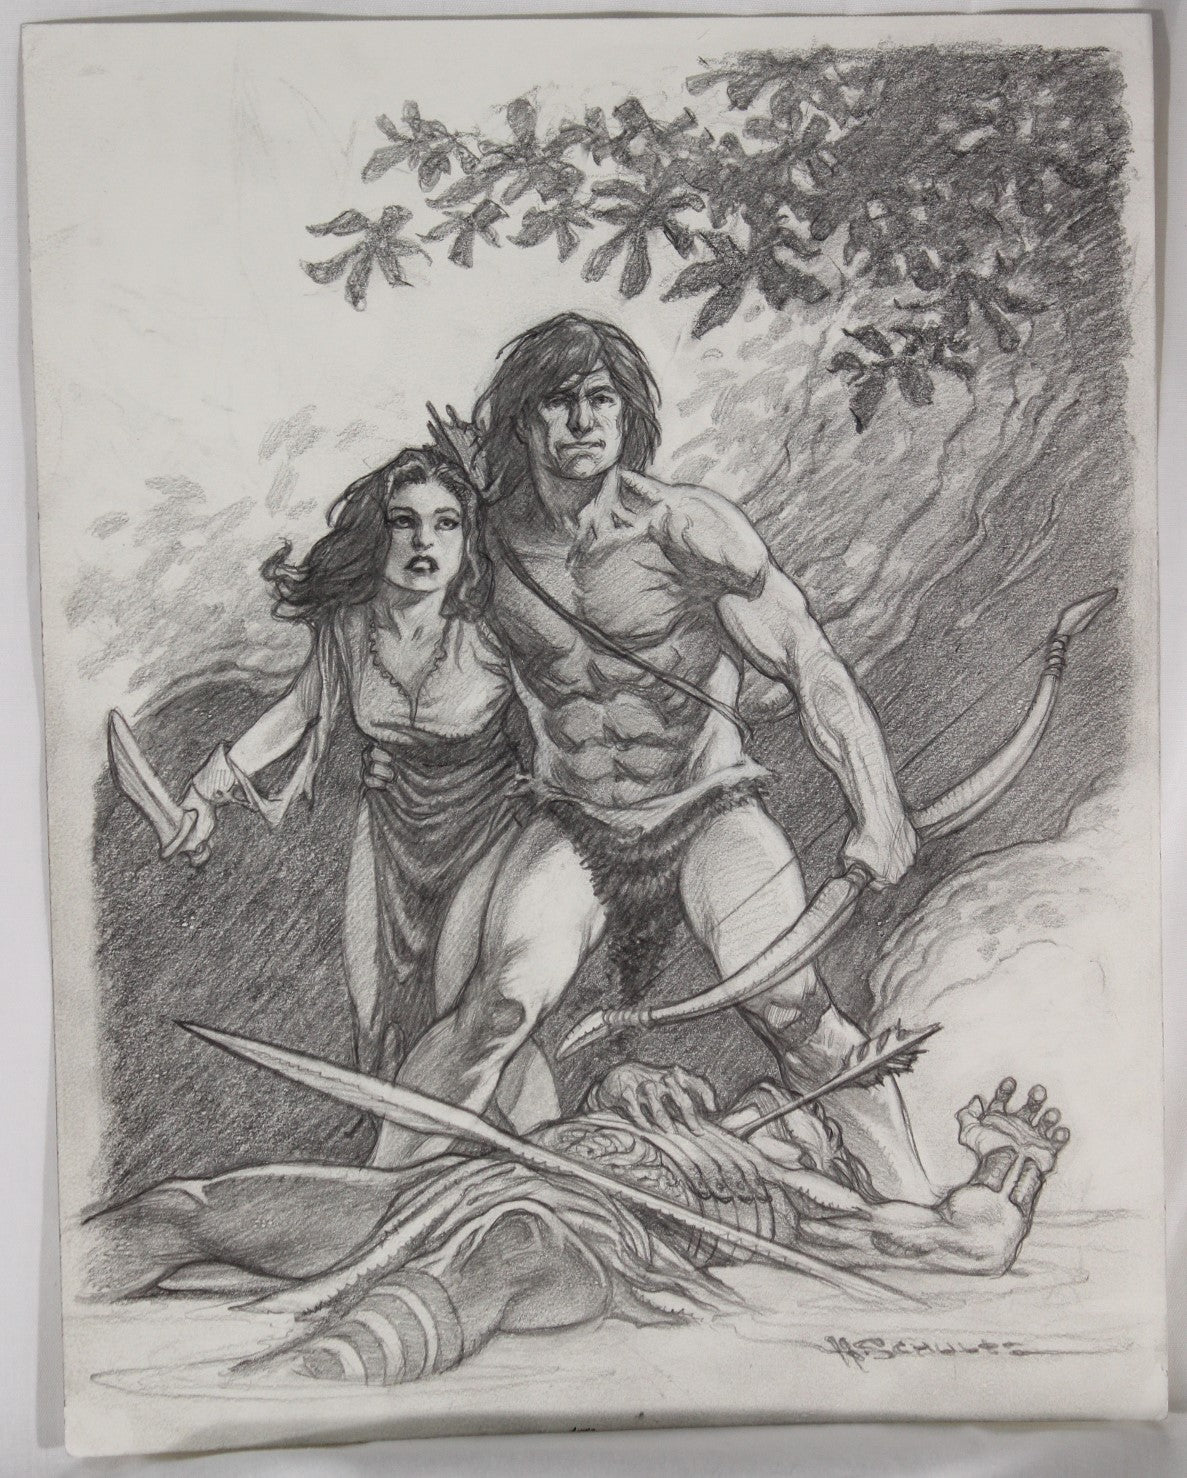 Marc Schultz - Tarzan and Jane - Published in carbon